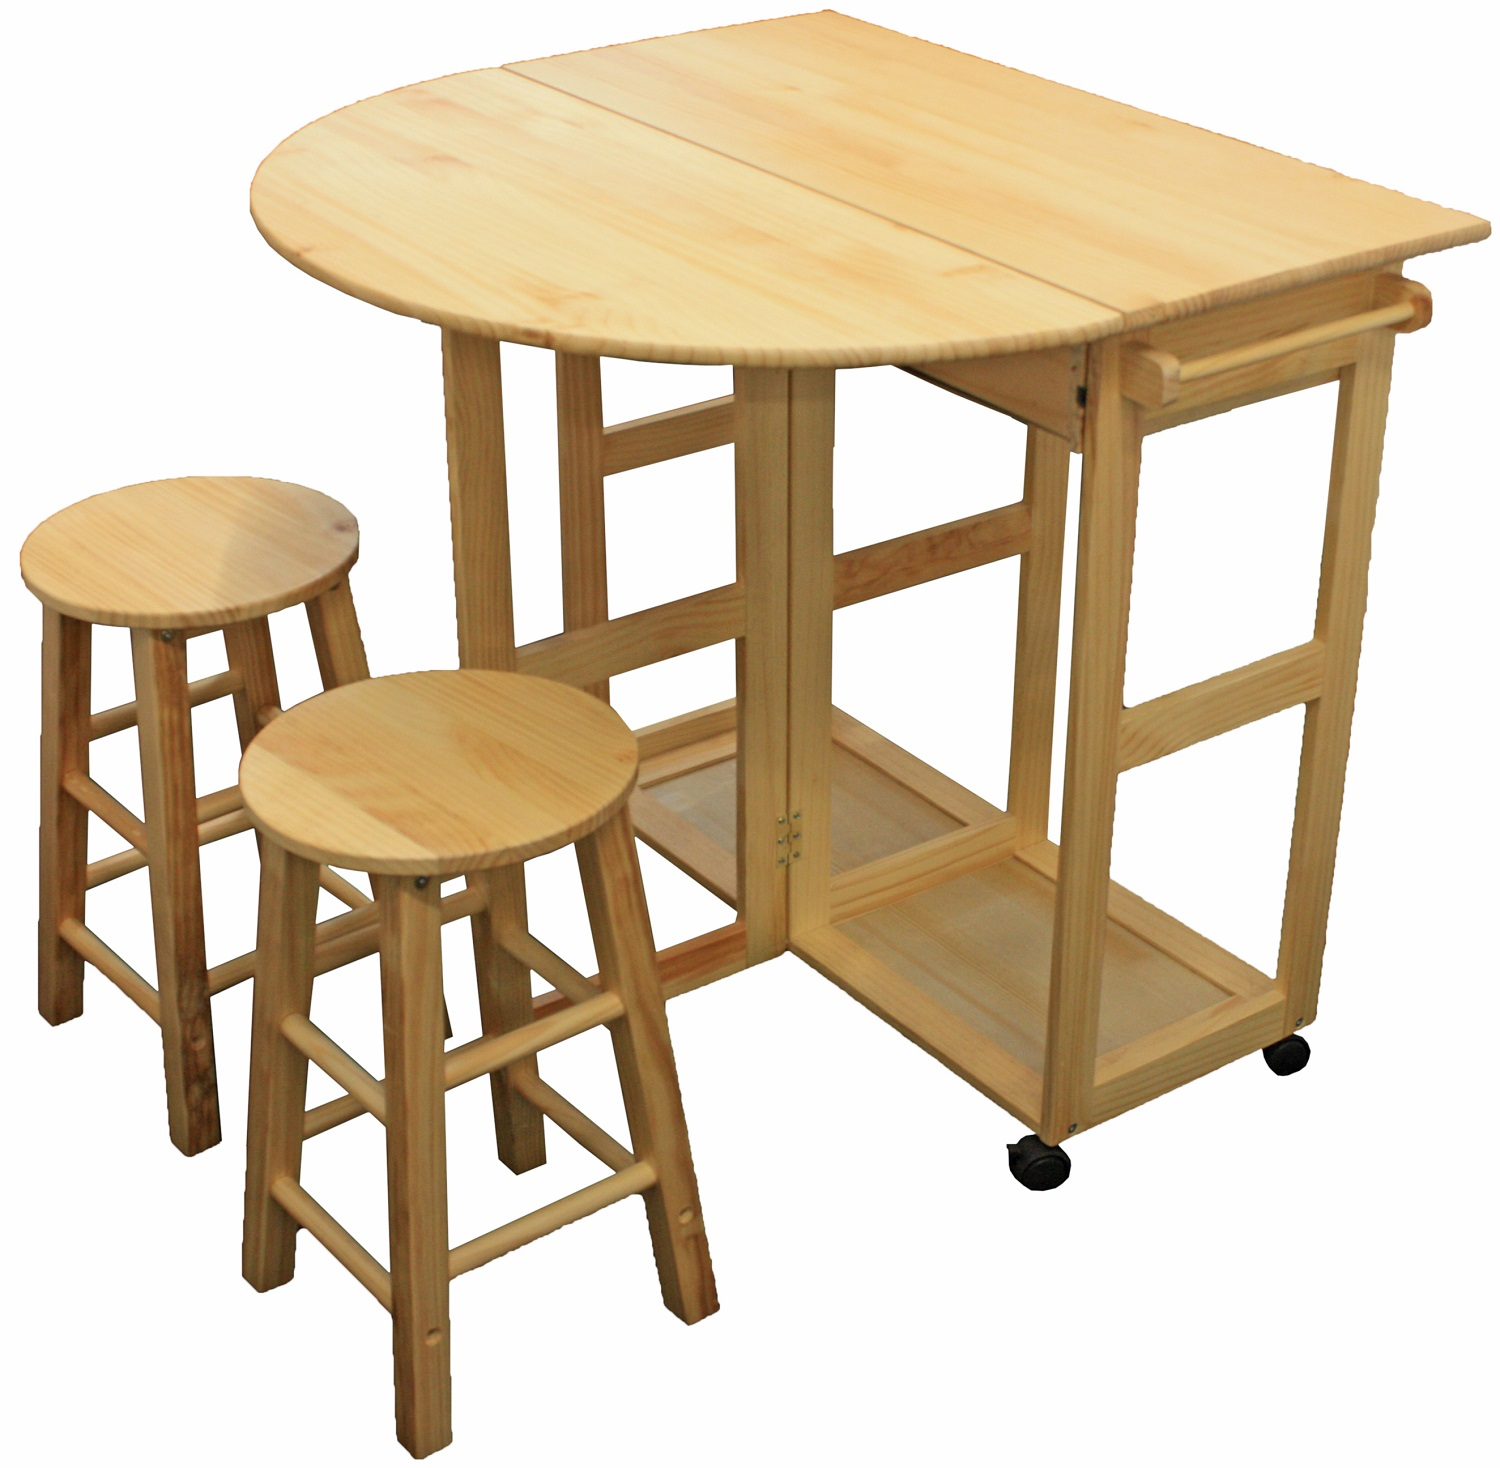 Bar Stools And Table Set Maribelle Folding Table And Stool Set Kitchen Breakfast